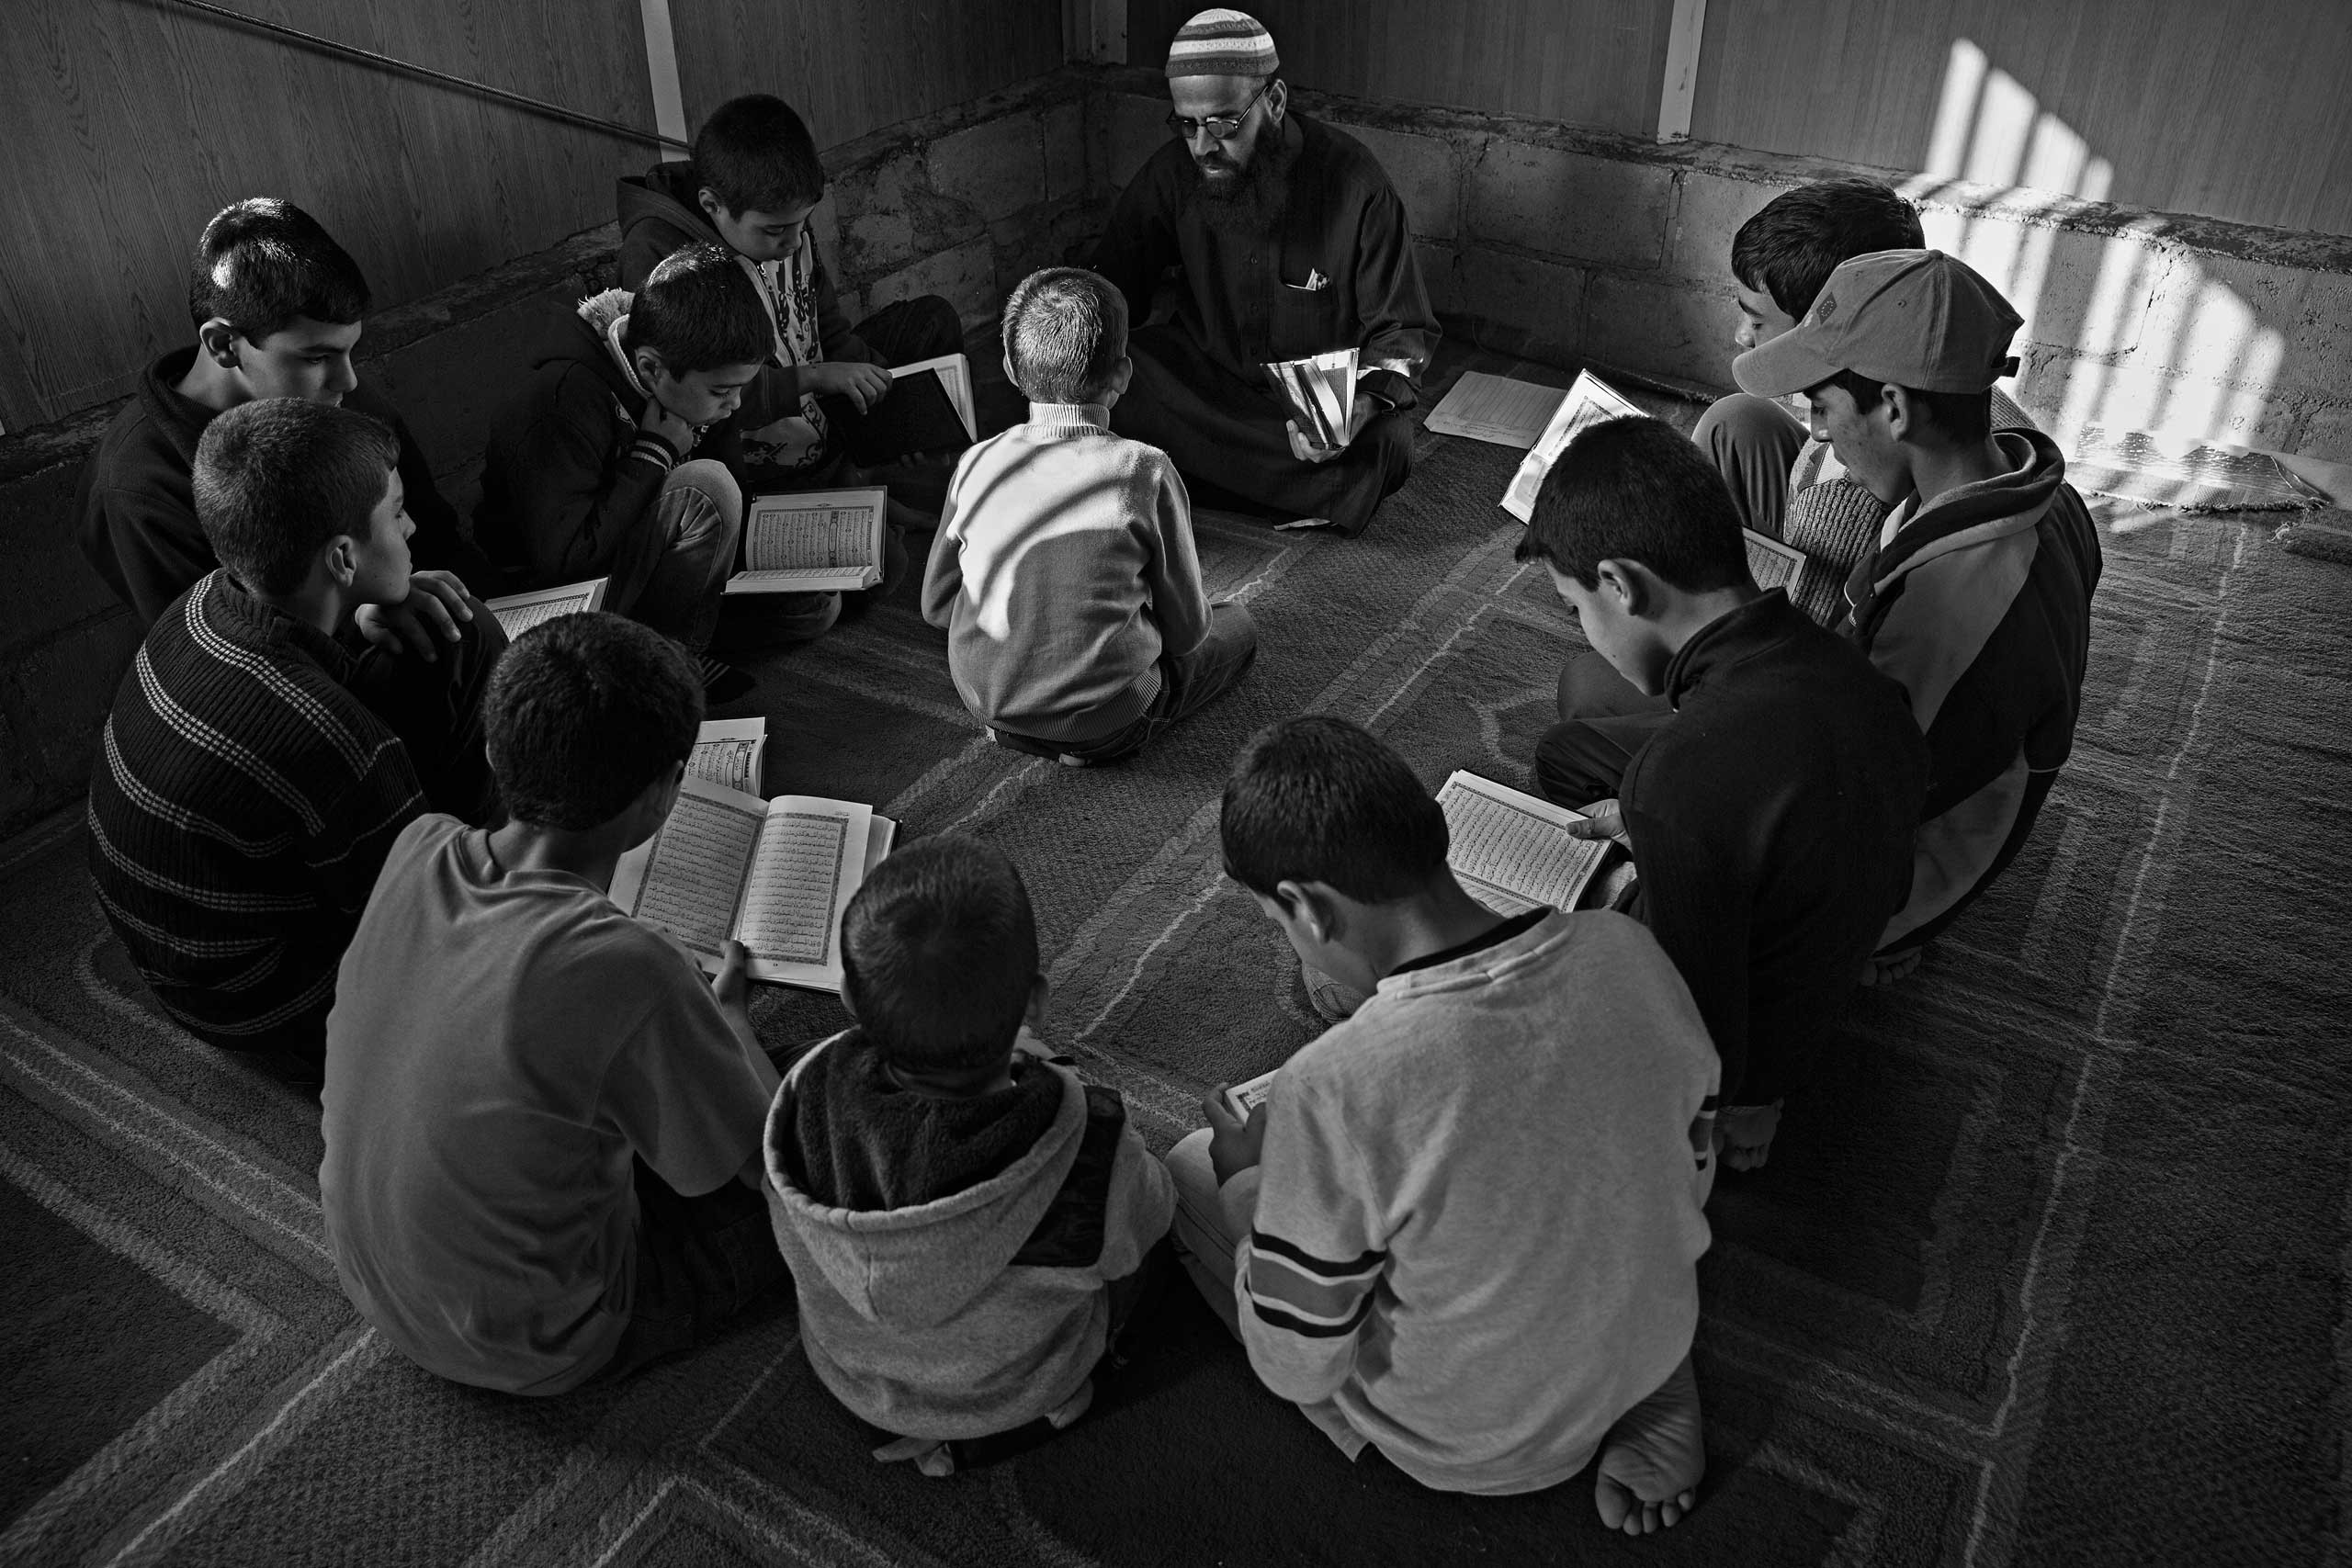 December 2013. Za'atari refugee camp, Jordan. Young boys learning the Koran during daily classes in a mosque.